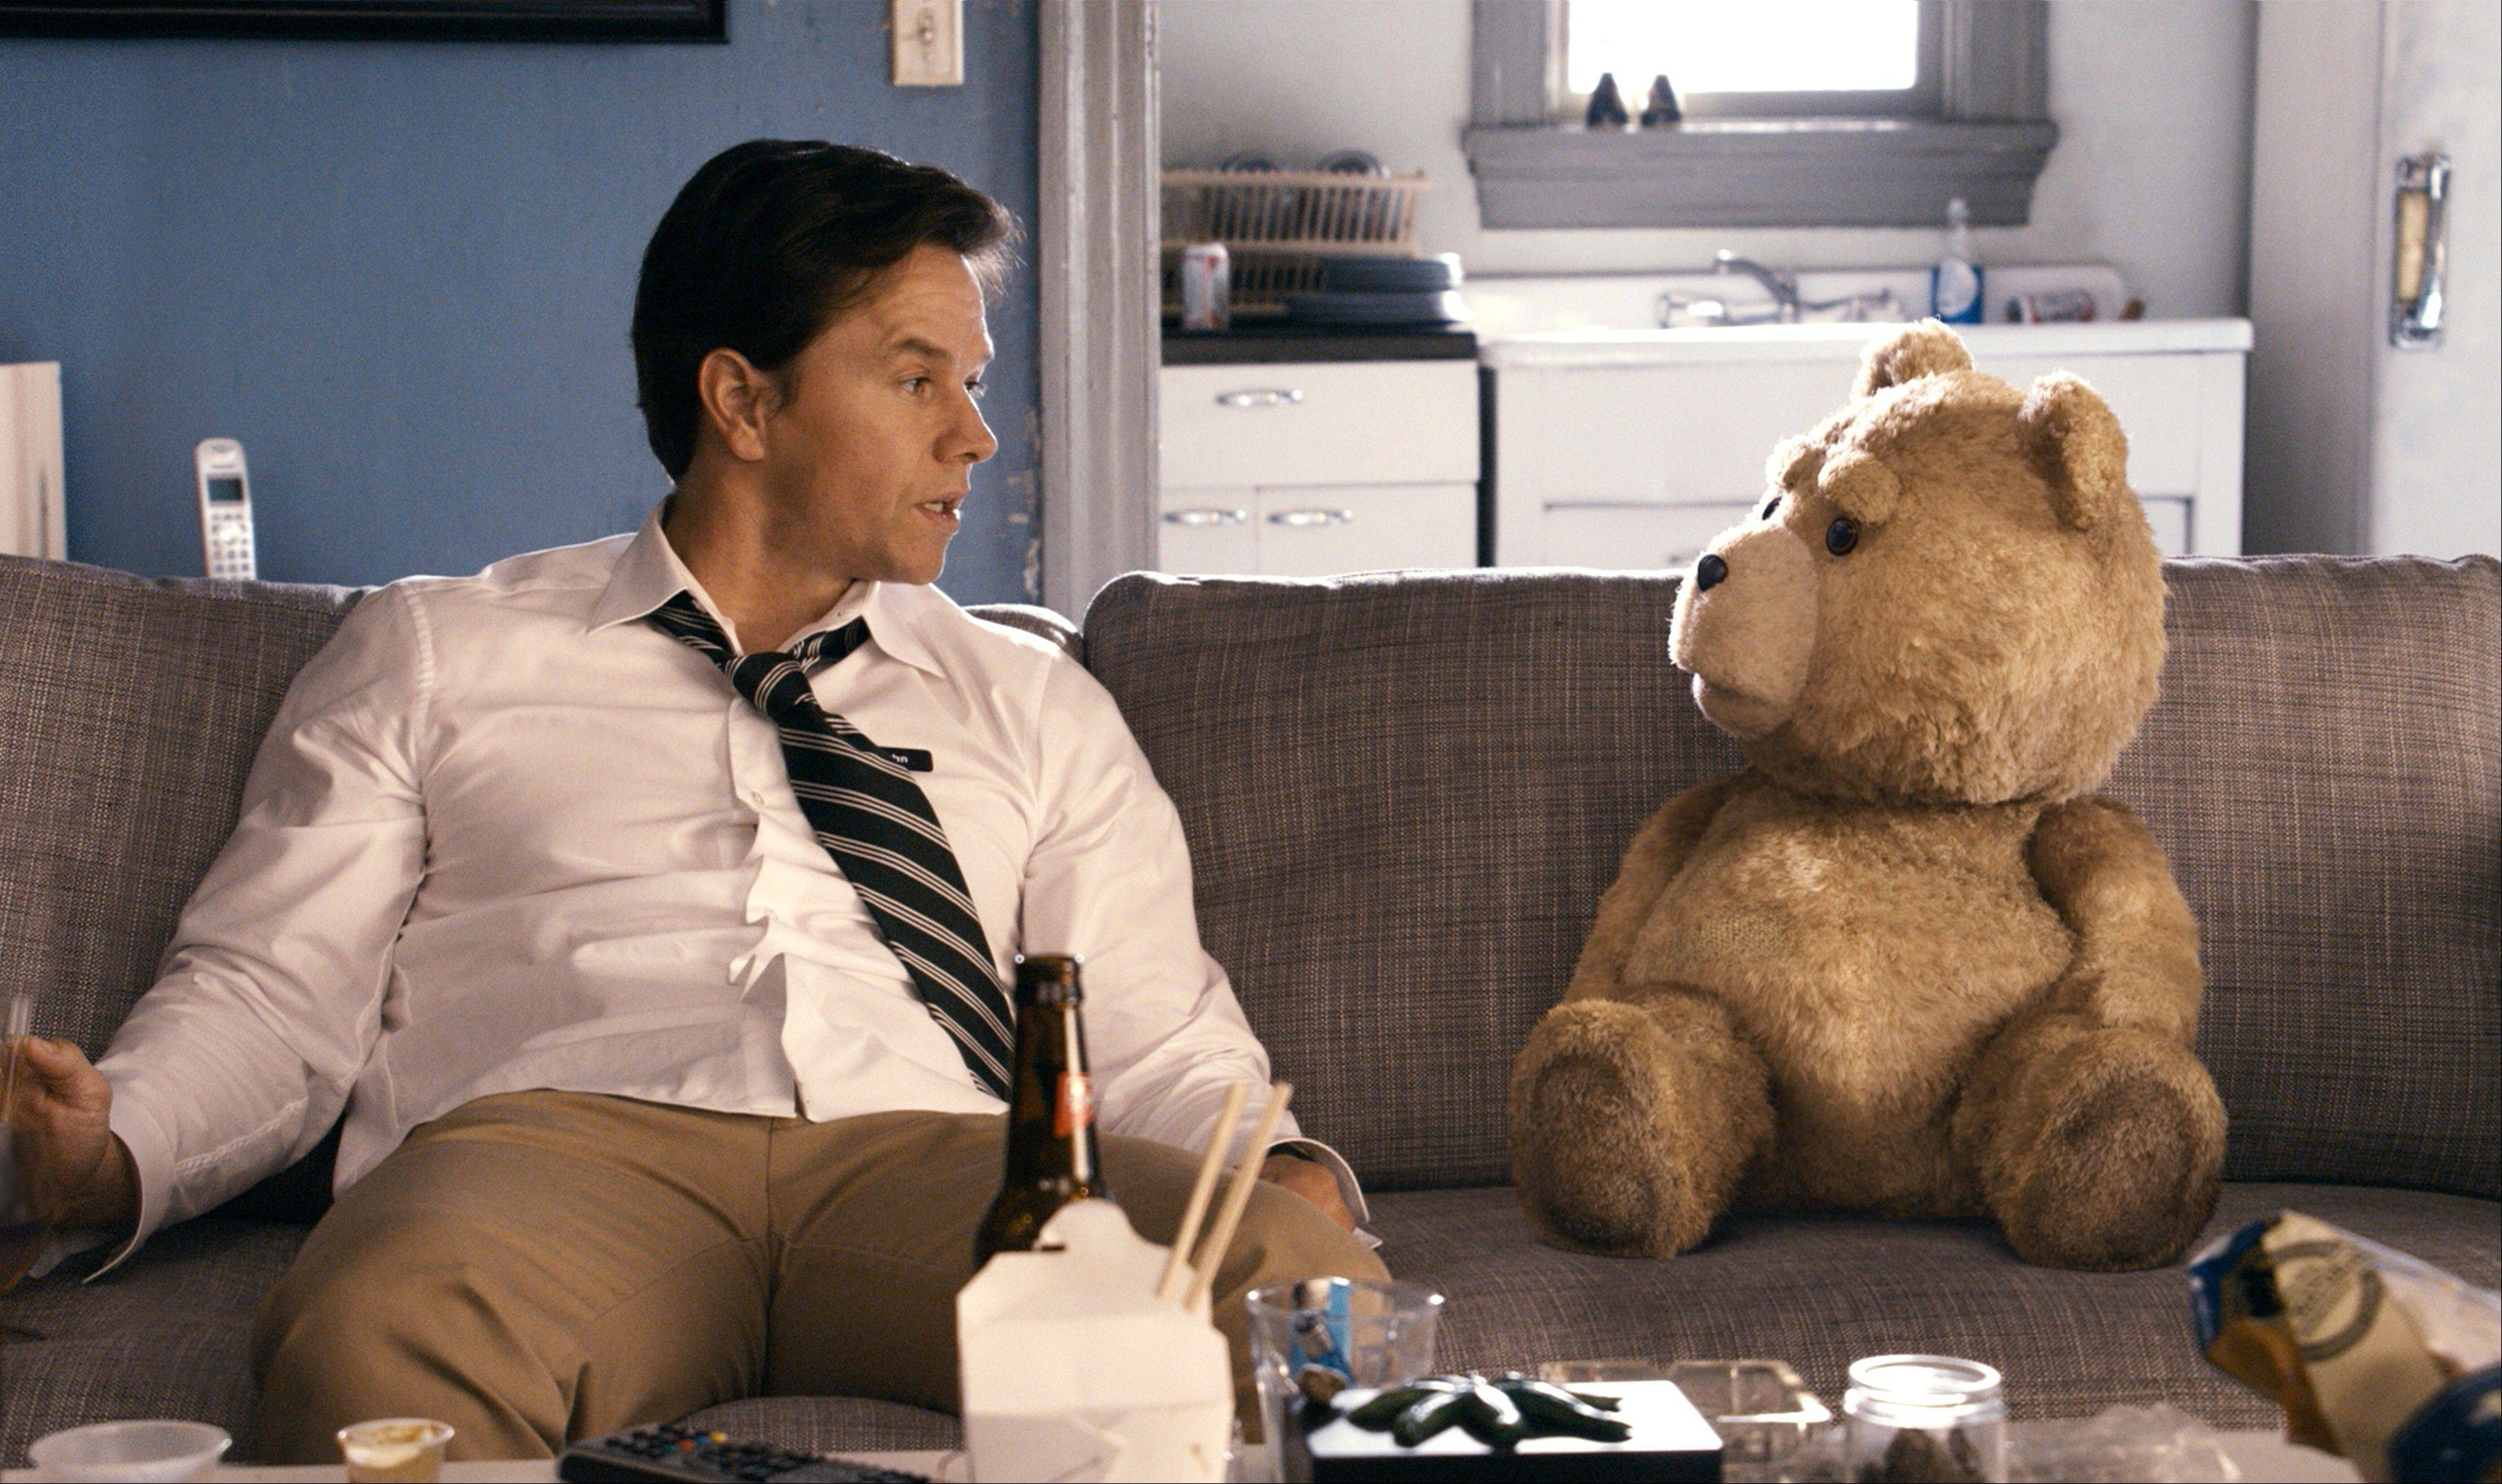 'Ted' shows off its rude and crude side